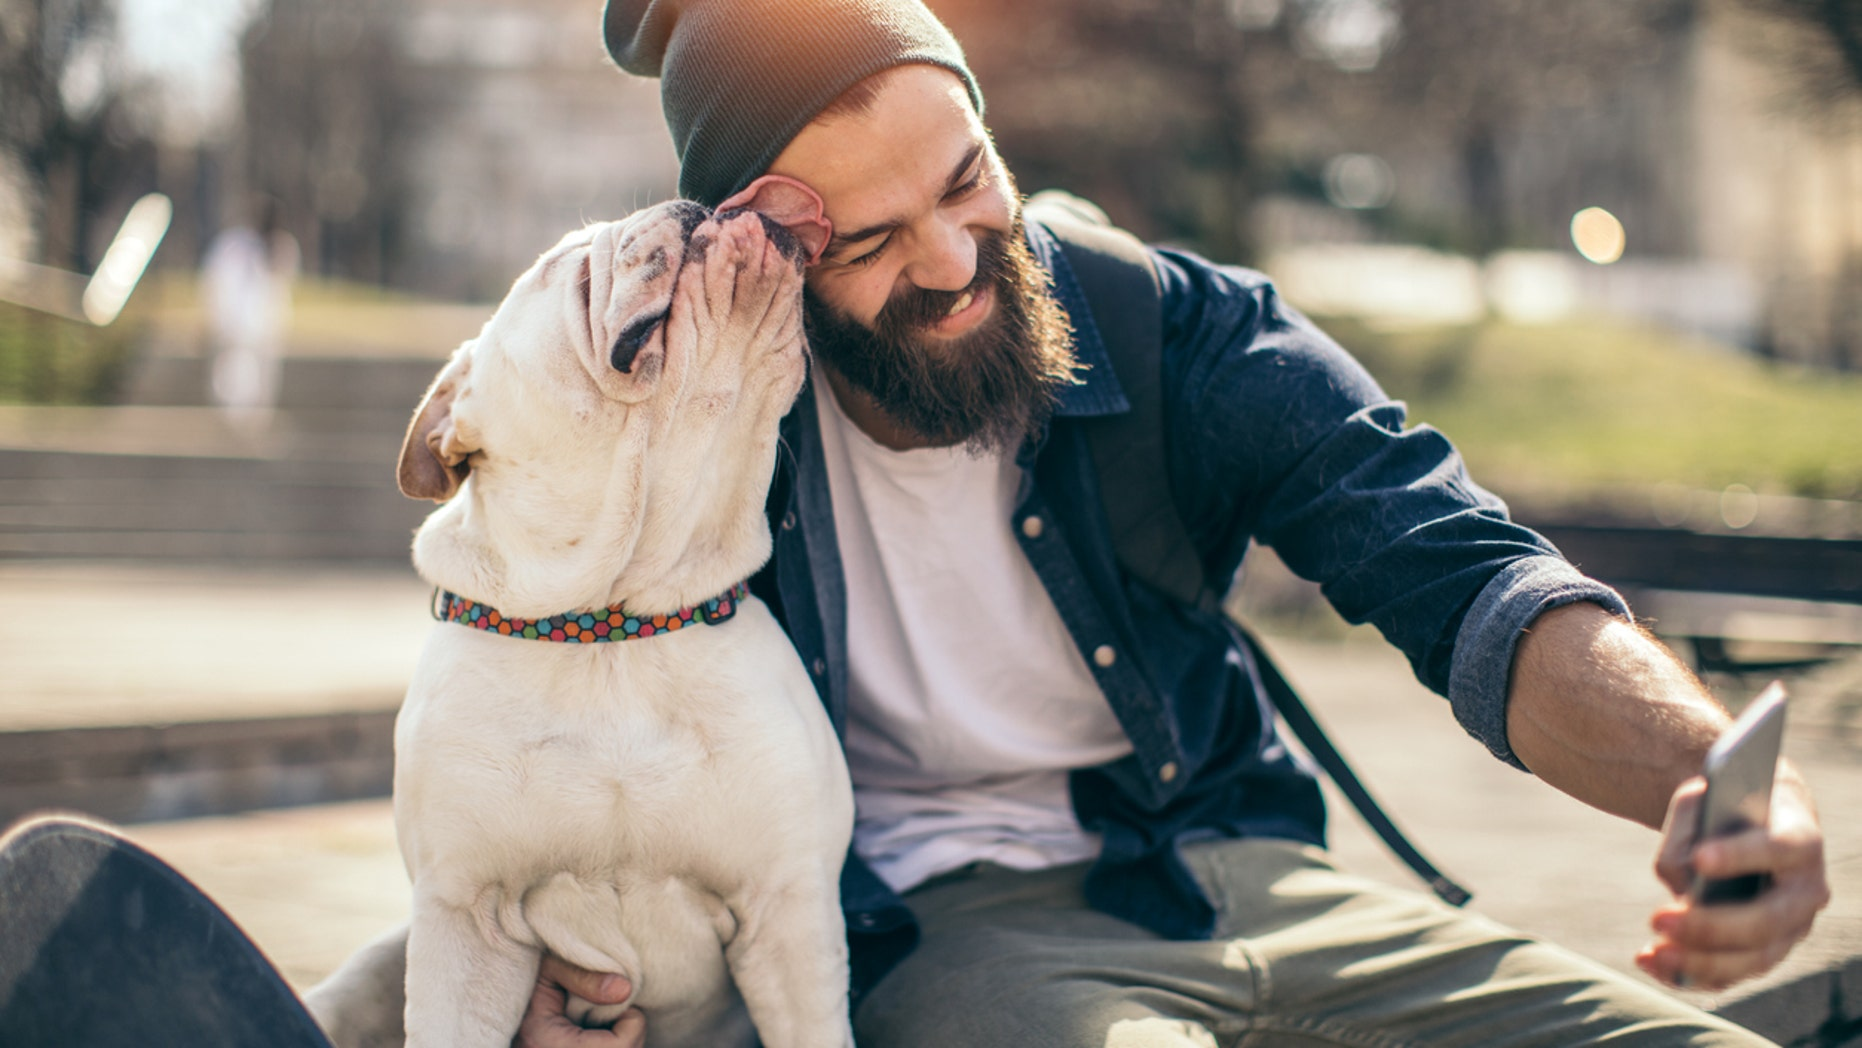 A Study Found Men's Beards Have More Germs Than Dogs' Fur Coats